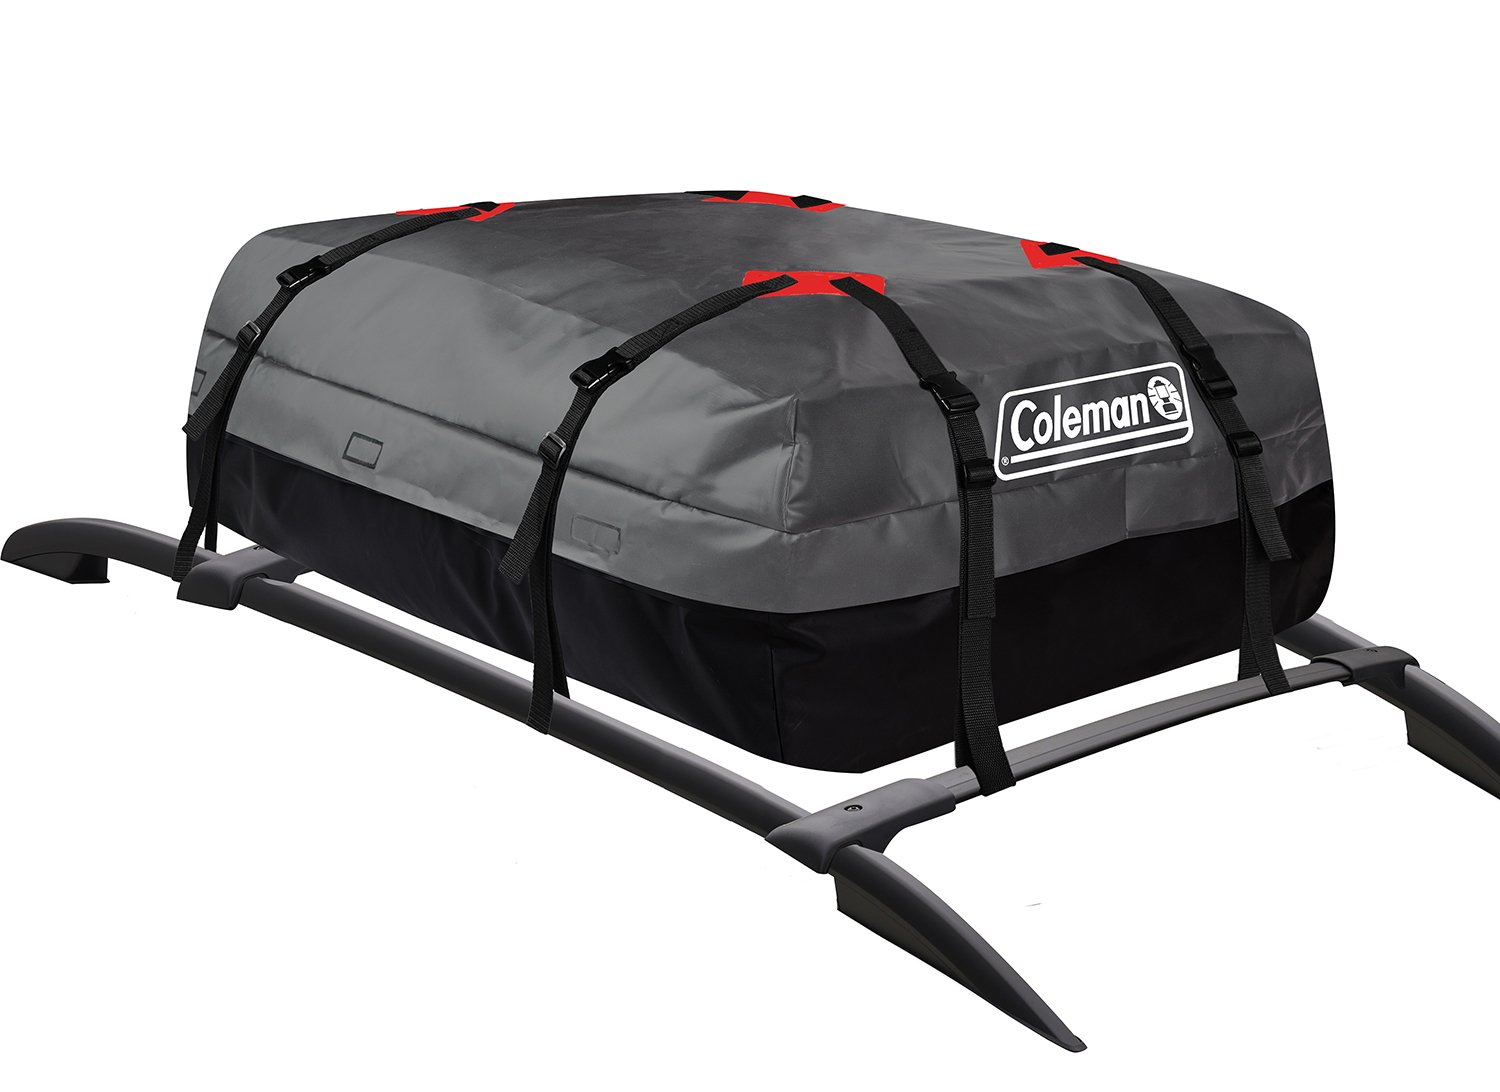 Coleman Waterproof Roof Top Rack Cargo Carrier - for Vehicles with and Without Rails - All Weather Storage Bag - Gray